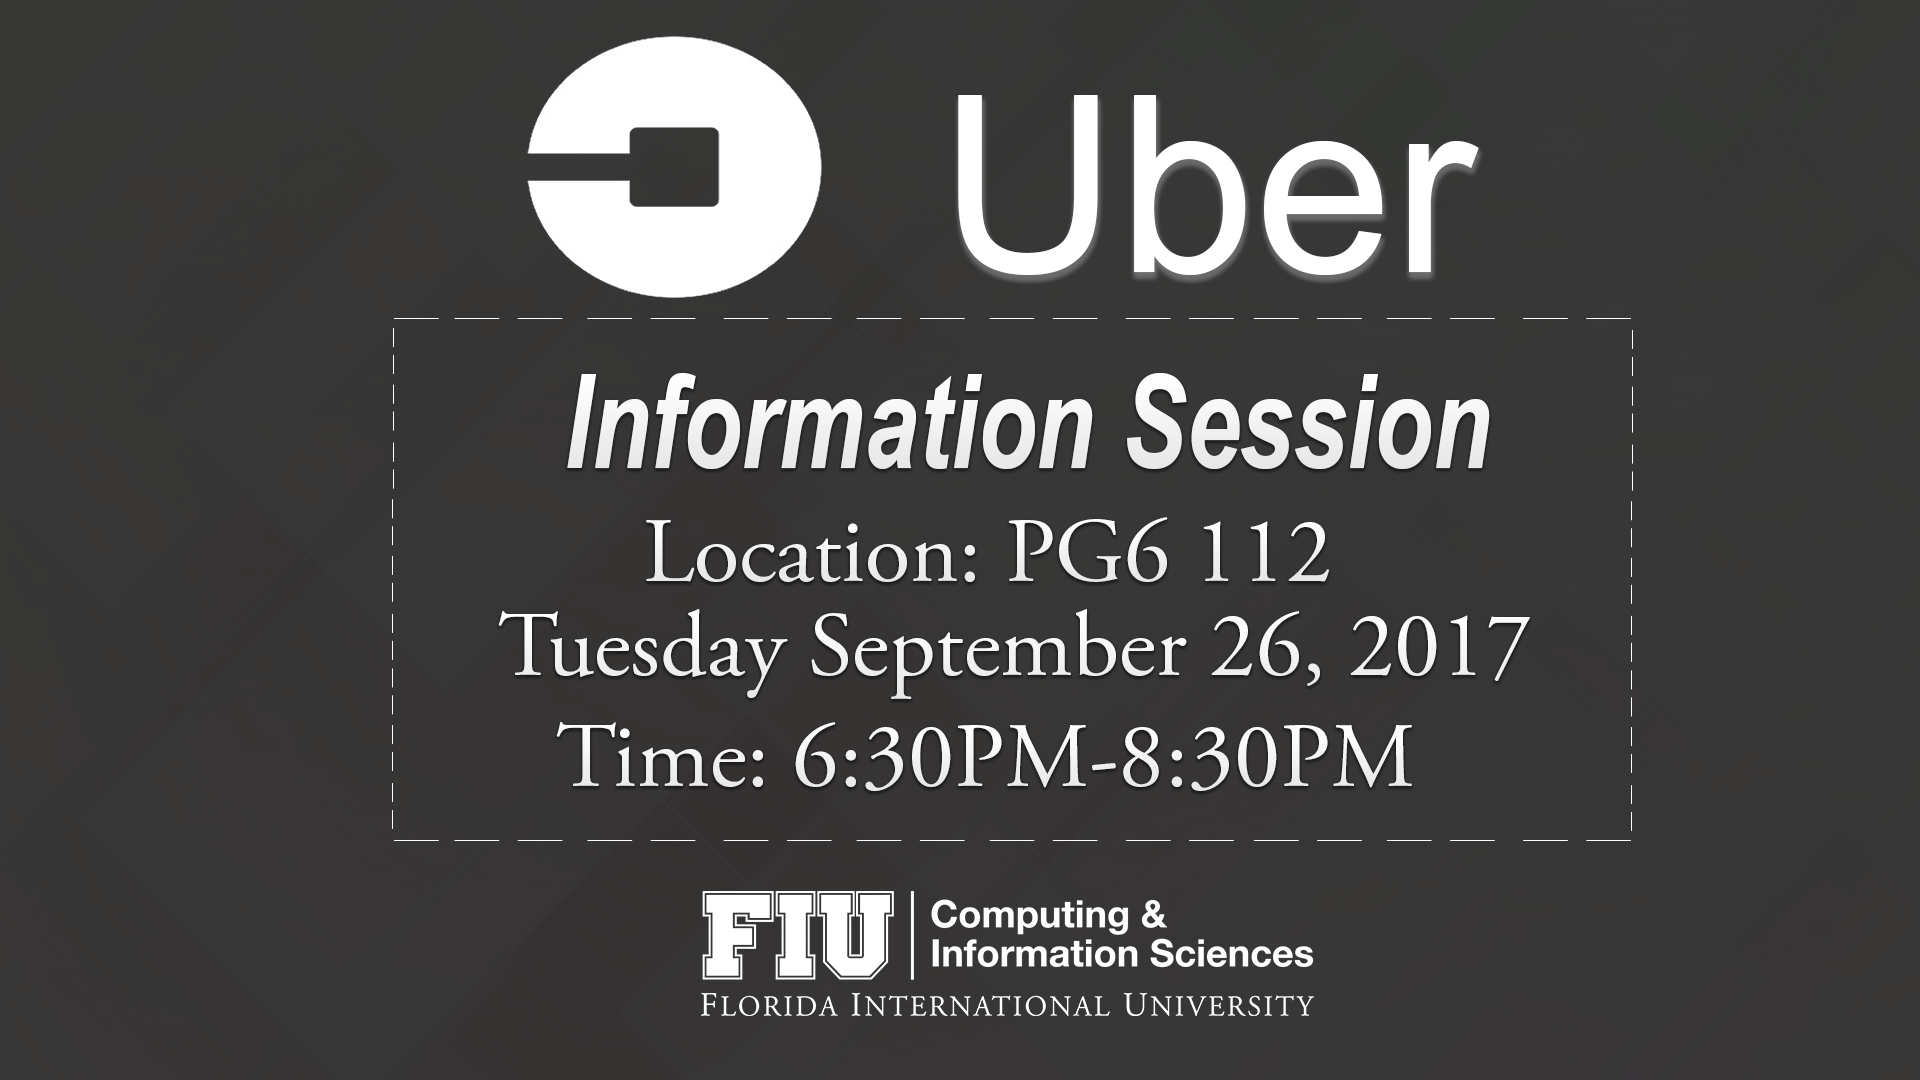 uber information session school of computing and